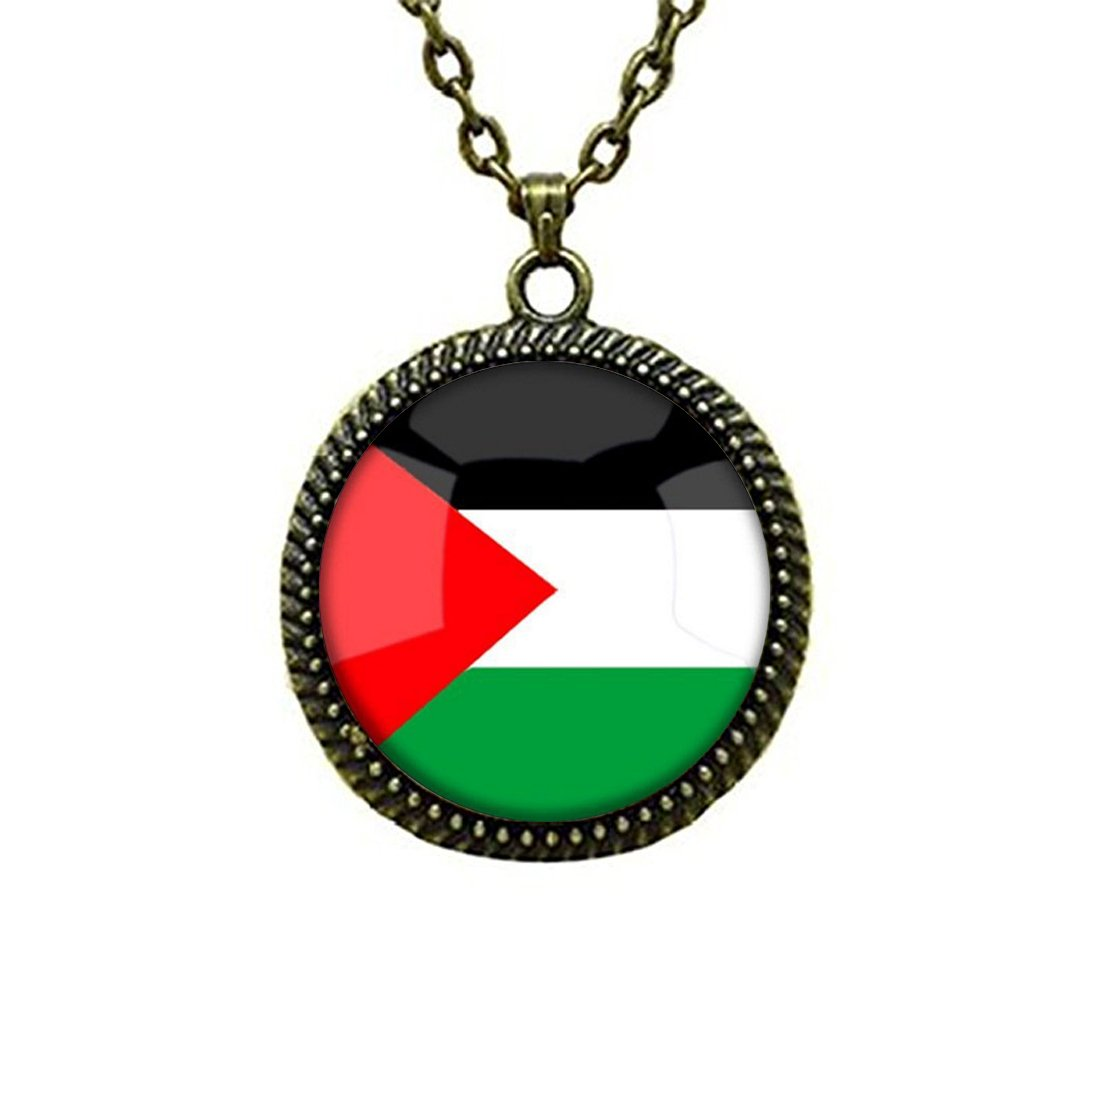 Glass Cabochon Pendant Necklace The Hashemite Kingdom of Jordan National Flag Vintage Chain Circle Bronze Bead Choker Healing Amulet